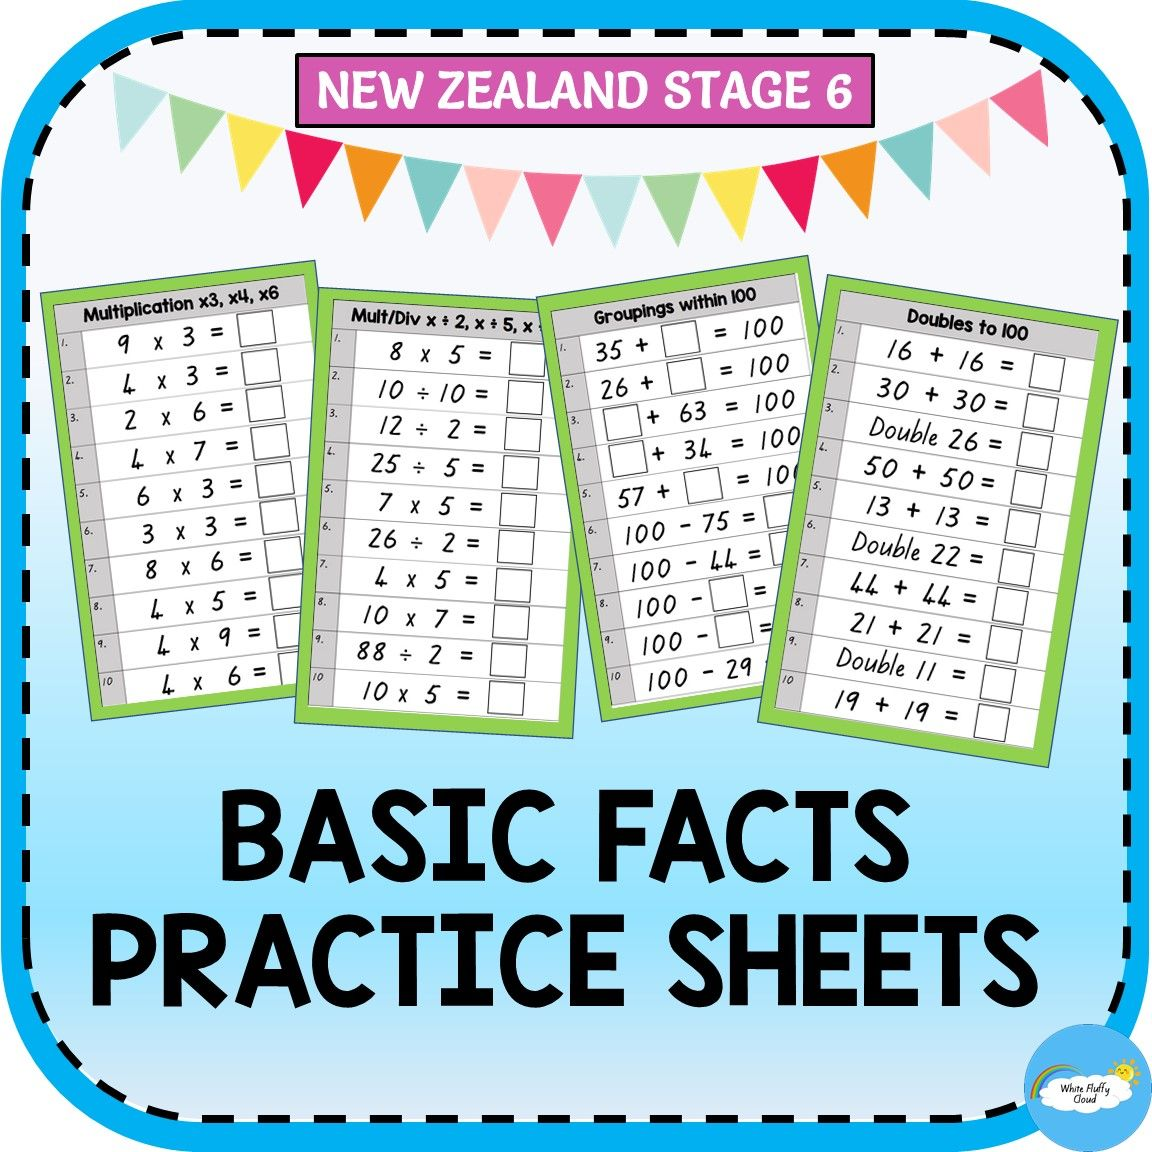 Basic Facts Practice Sheets Nz Stage 6 Basic Facts Practice Basic Facts Subtraction Facts